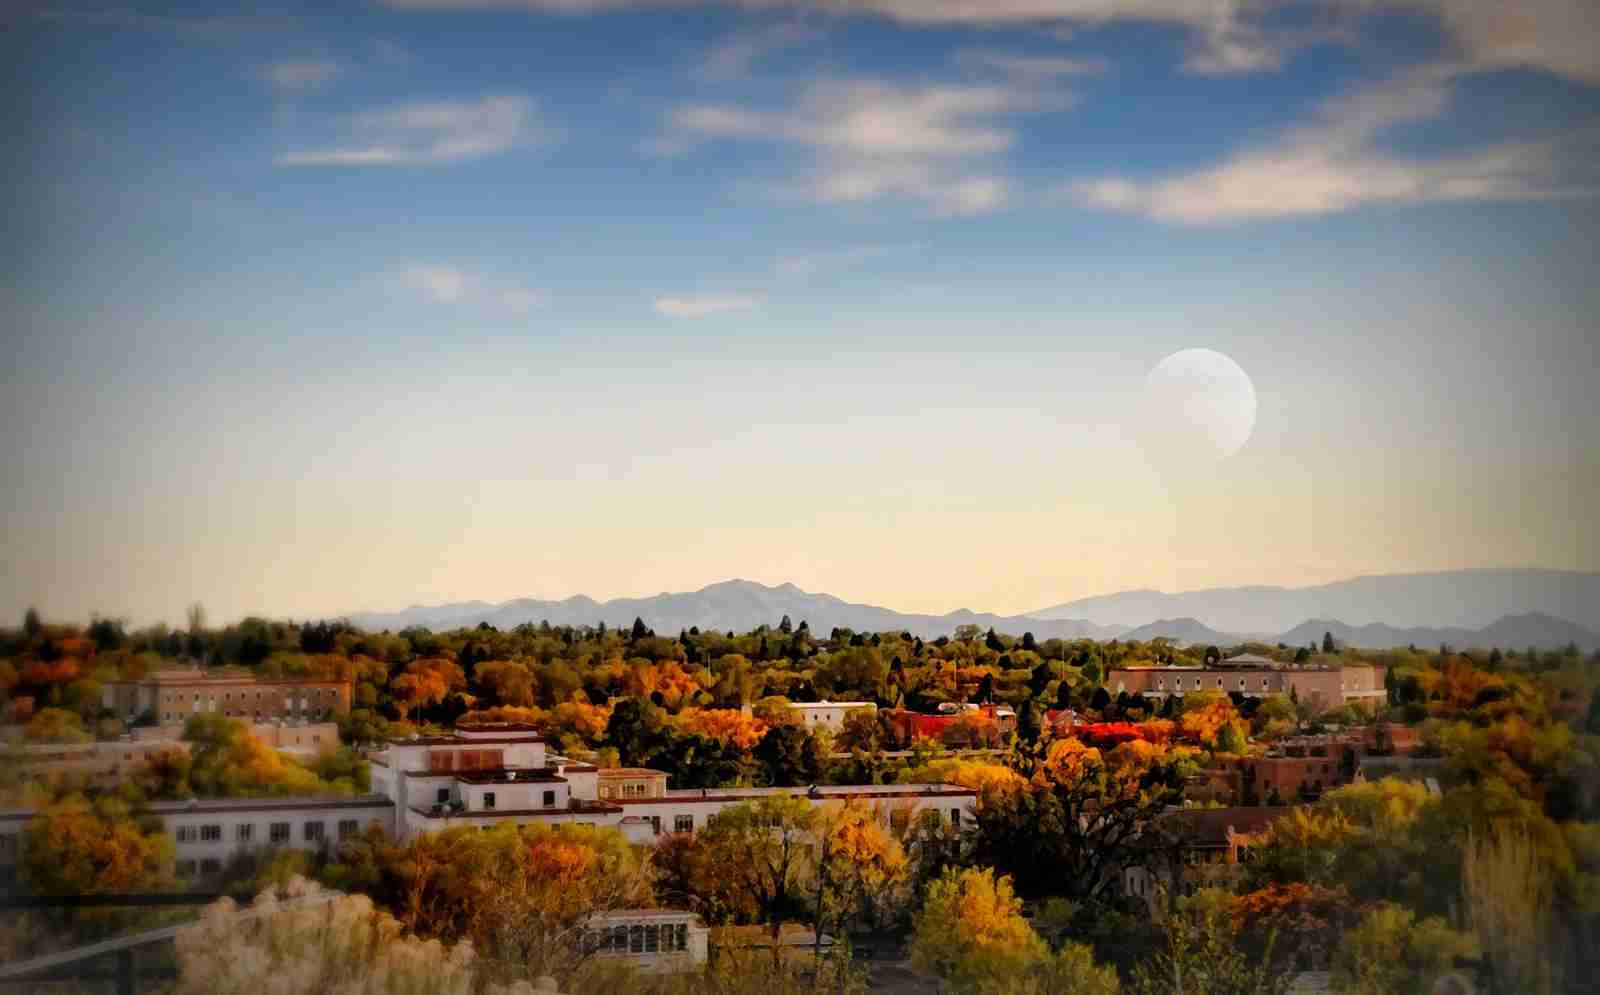 Santa Fe, New Mexico. (Photo by Diana Lee Angstadt/Getty Images)